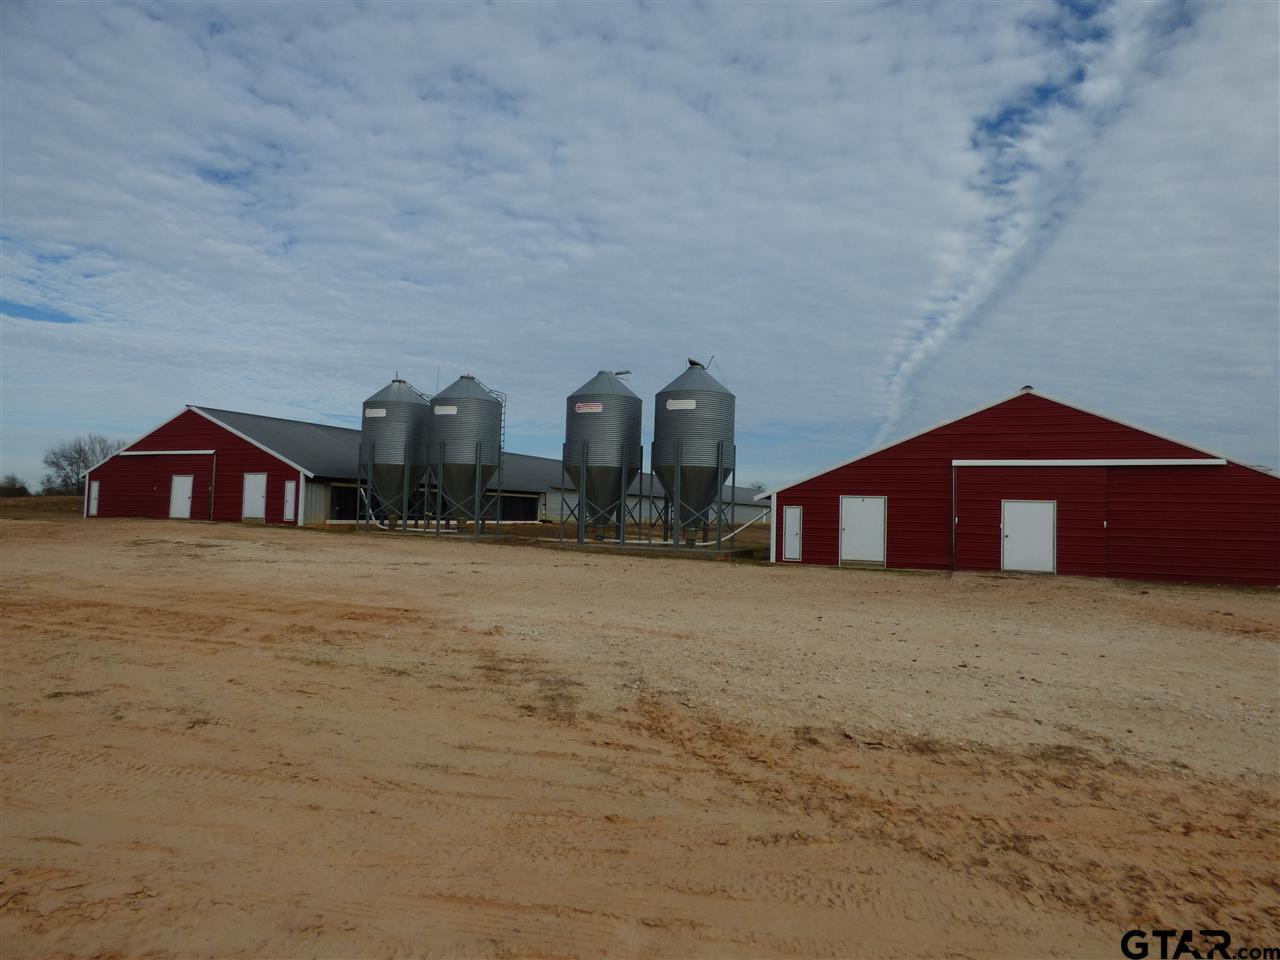 2 INCOME PRODUCING POULTRY FARMS.  BOTH OF THE FARMS AVE 6/500 FT POULTRY HOUSES .  THIS FARM, BUILT IN 2003, FEATURE THE 6/ 500 FT STEEL HOUSES AS WELL AS AN INSULATED SHOP, COMPOSTER, AND INCINERATOR. THIS FARM IS WELL MAINTAINED.  THERE ARE 2/ 500+ FT WELLS.  CUMBERLAND FEEDERS, PLASSON WATER, AND LB WHITE BROODERS.  BUYERS MUST BE APPROVED AS A GROWER THROUGH PILGRIMS AND BE PREAPPROVED FOR FINANCING.